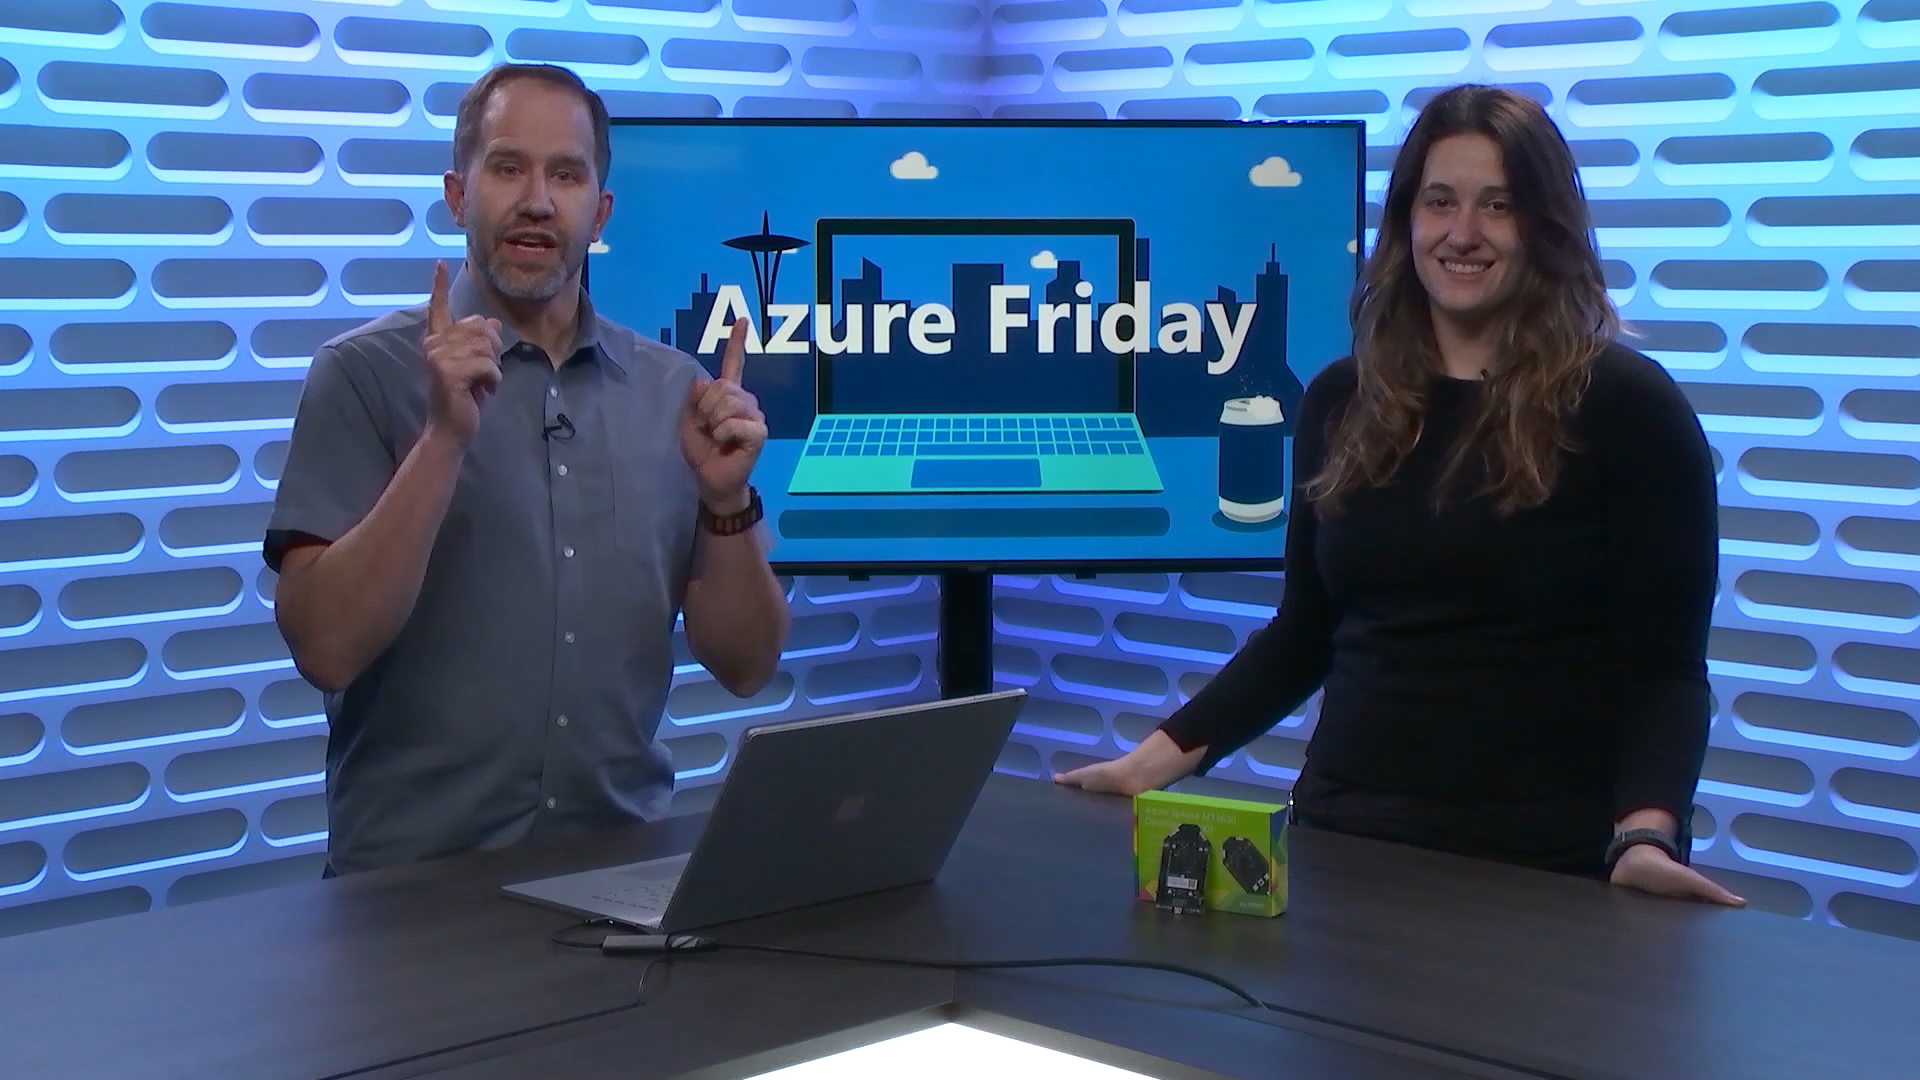 End-to-end IoT device security with Azure Sphere